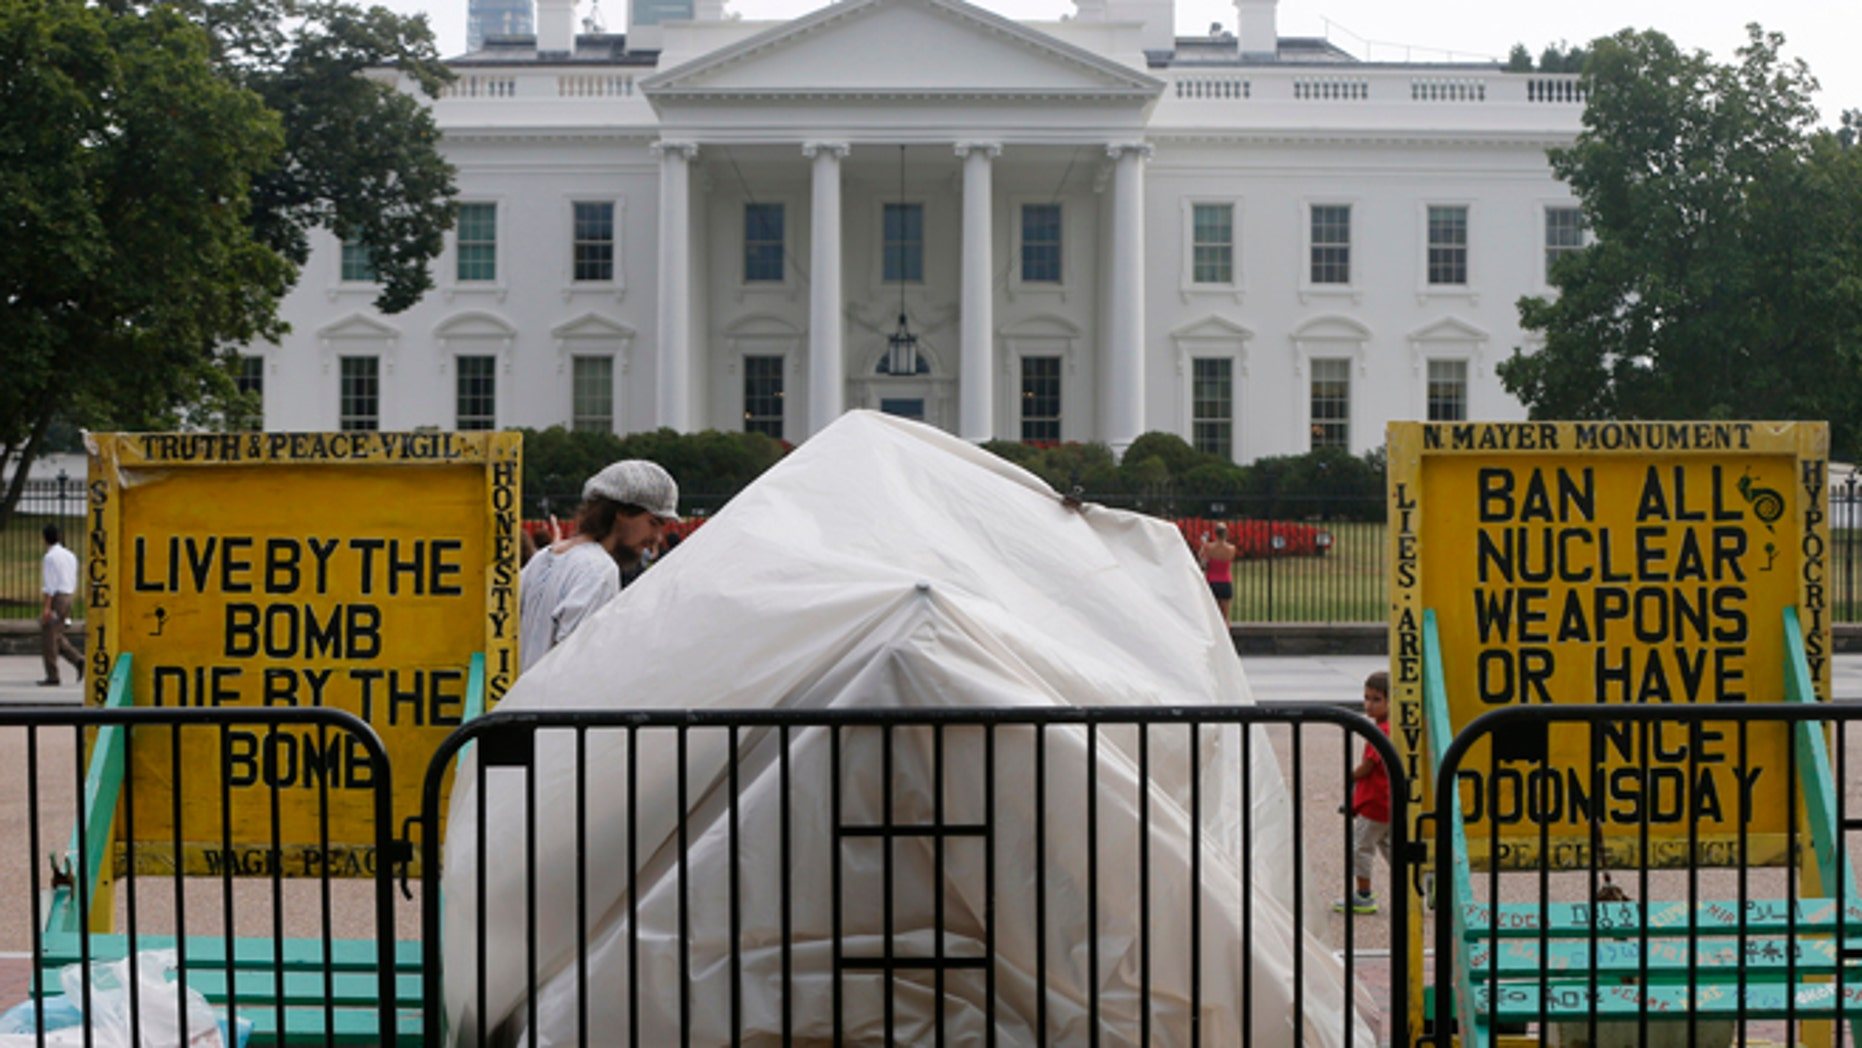 Sept. 12, 2013: The protest shelter for peace protestor Concepcion Picciotto, who holds a constant peace vigil in Lafayette Park across from the White House in Washington, is reassembled after her belongings were returned by Park Police after they were seized by Park Police.